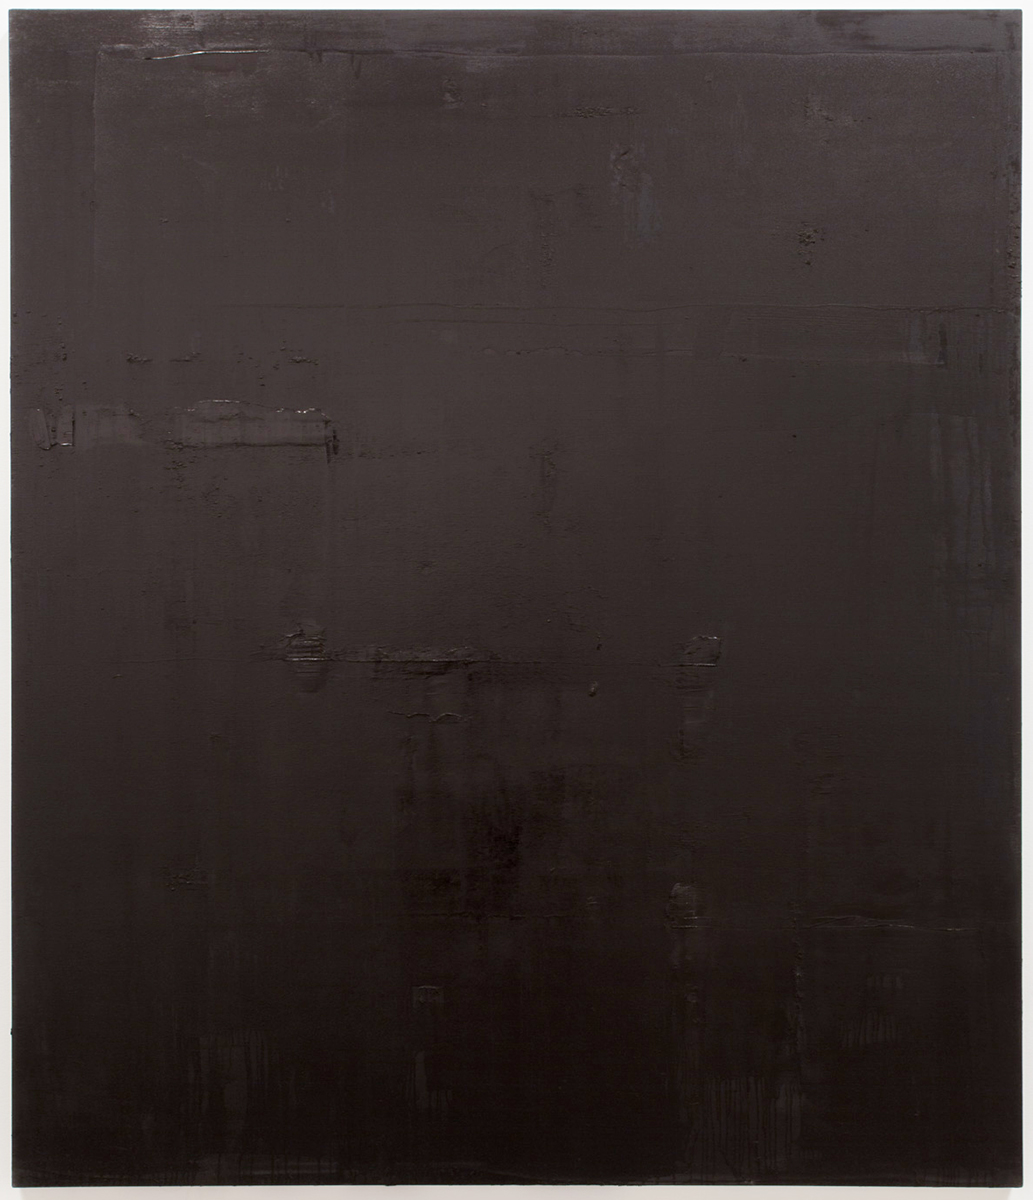 Untitled black monochrome painting (4.10.PBk9.CI77267/PBk11.Fe3O4) from the Frequency10. series. Oil, grit, graphite on canvas, 213.36cm x 182.88cm (84 inches x 72 inches), 2016-2017.